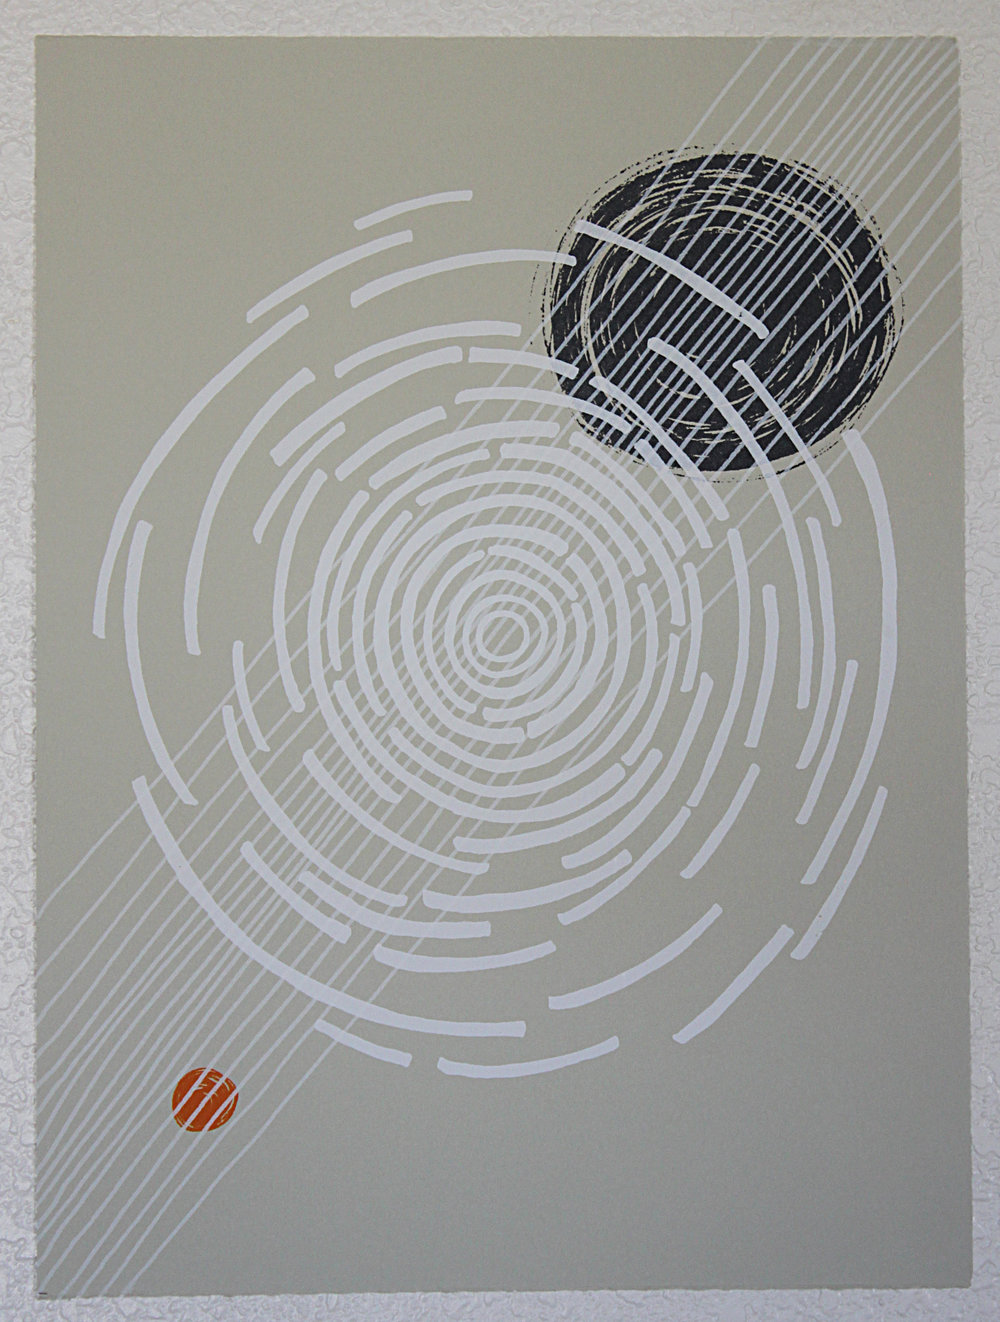 Fregoli Delusion Screen Print on Paper 15in x 11in 2015.JPG